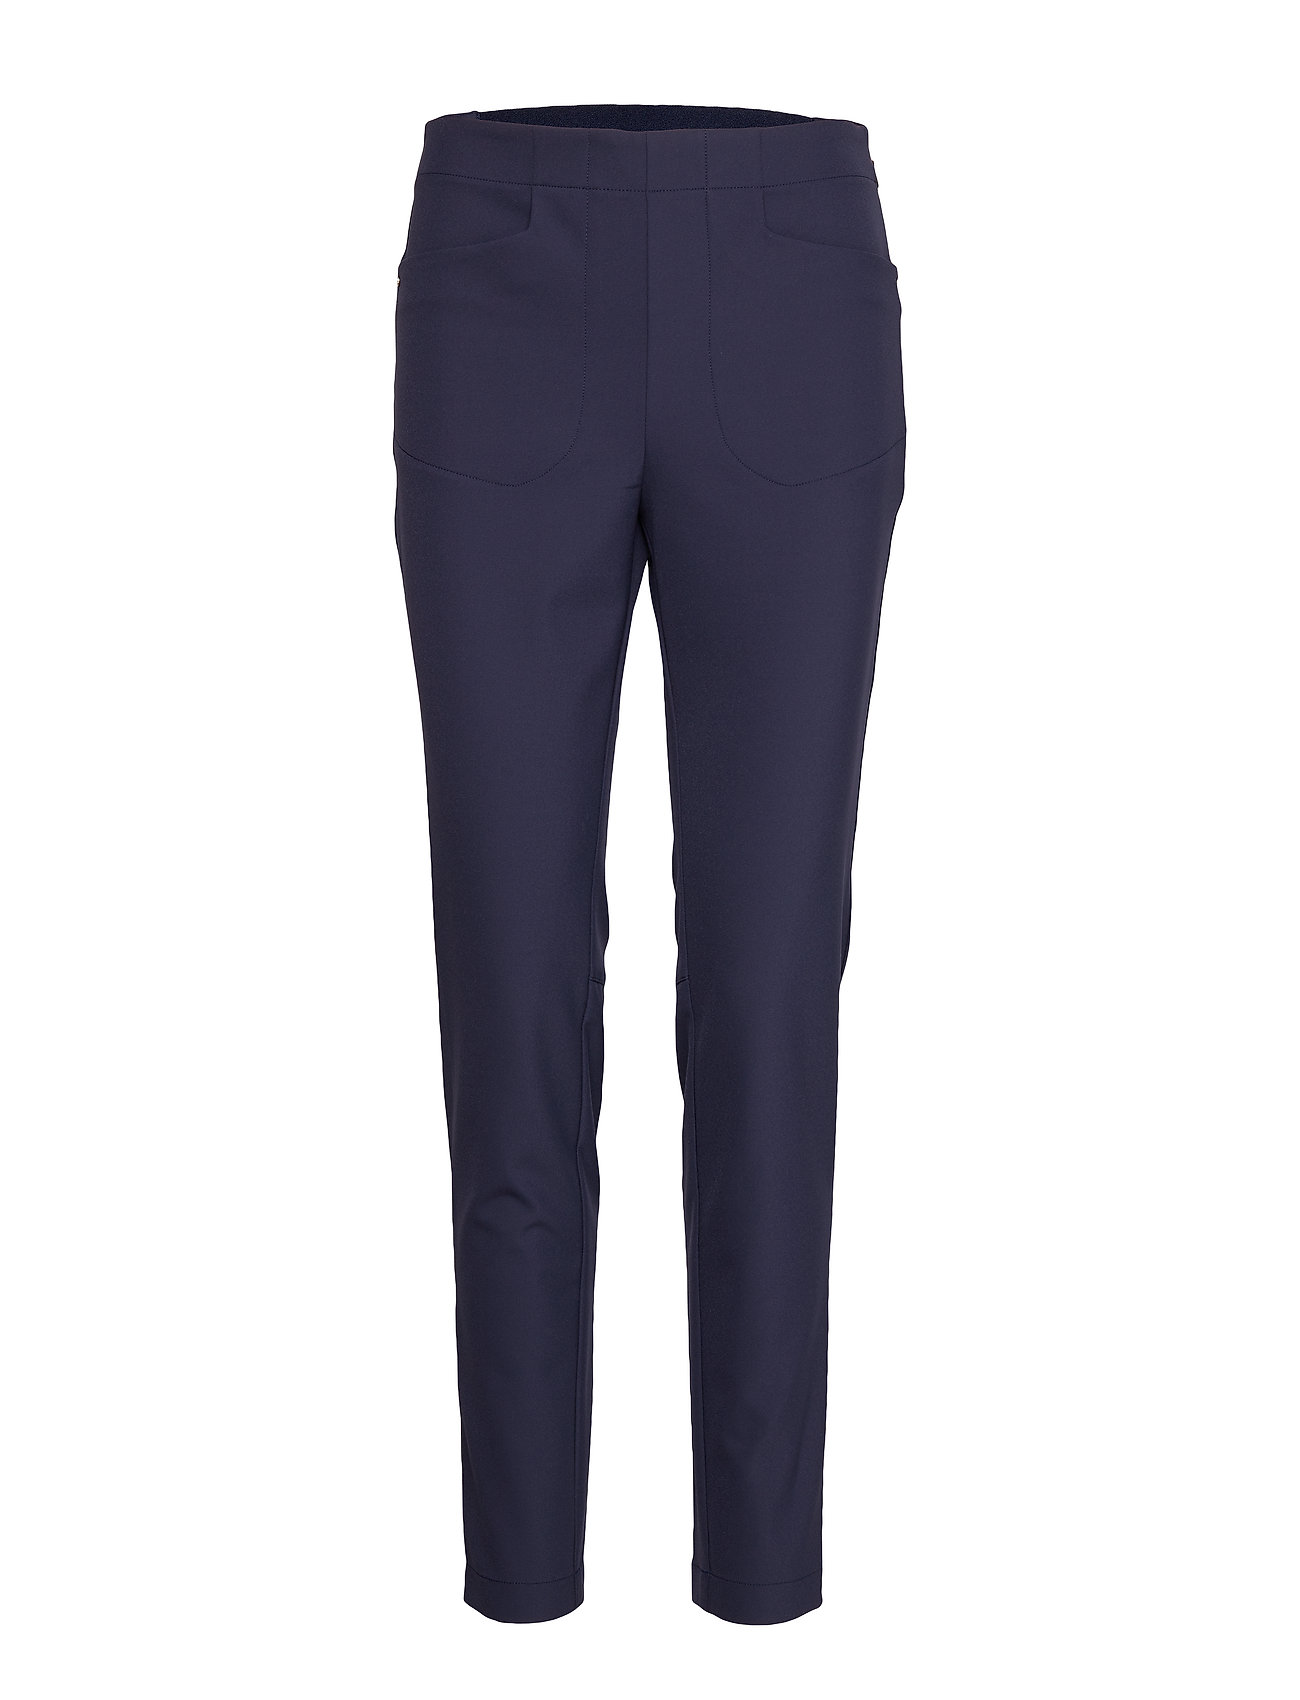 Ralph Lauren Golf Stretch Athletic Golf Pant - FRENCH NAVY